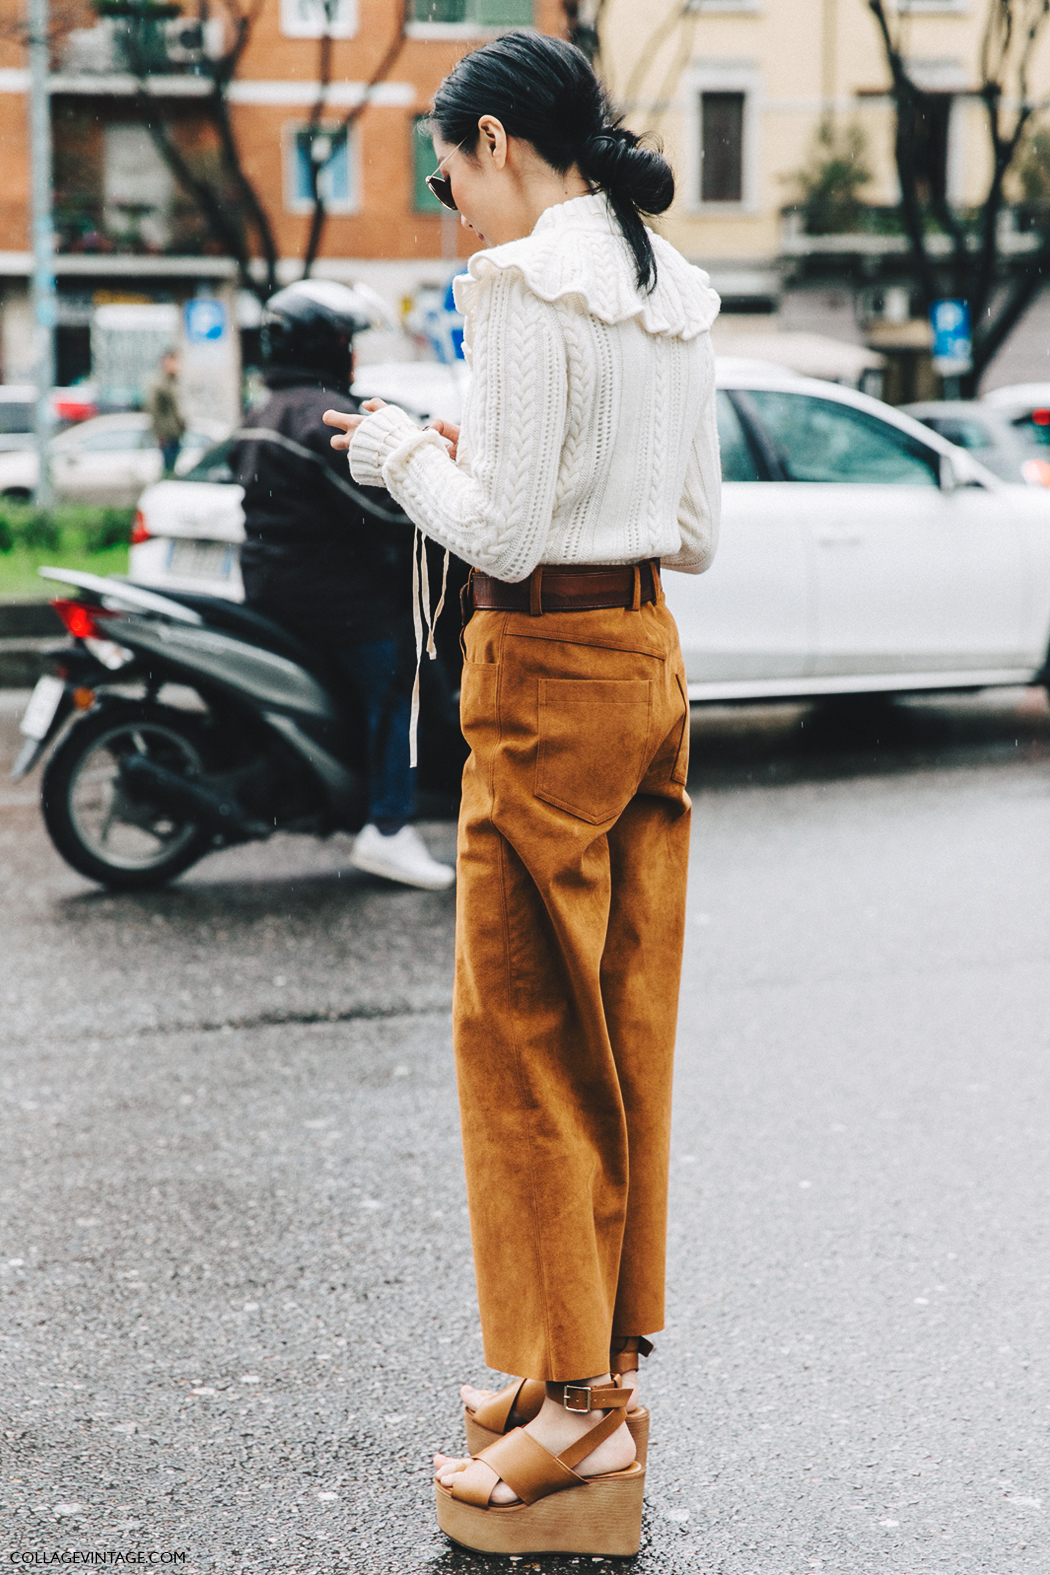 Milan_Fashion_Week_Fall_16-MFW-Street_Style-Collage_Vintage-Yoyo_Cao-Camel_Trousers-Sandals-2